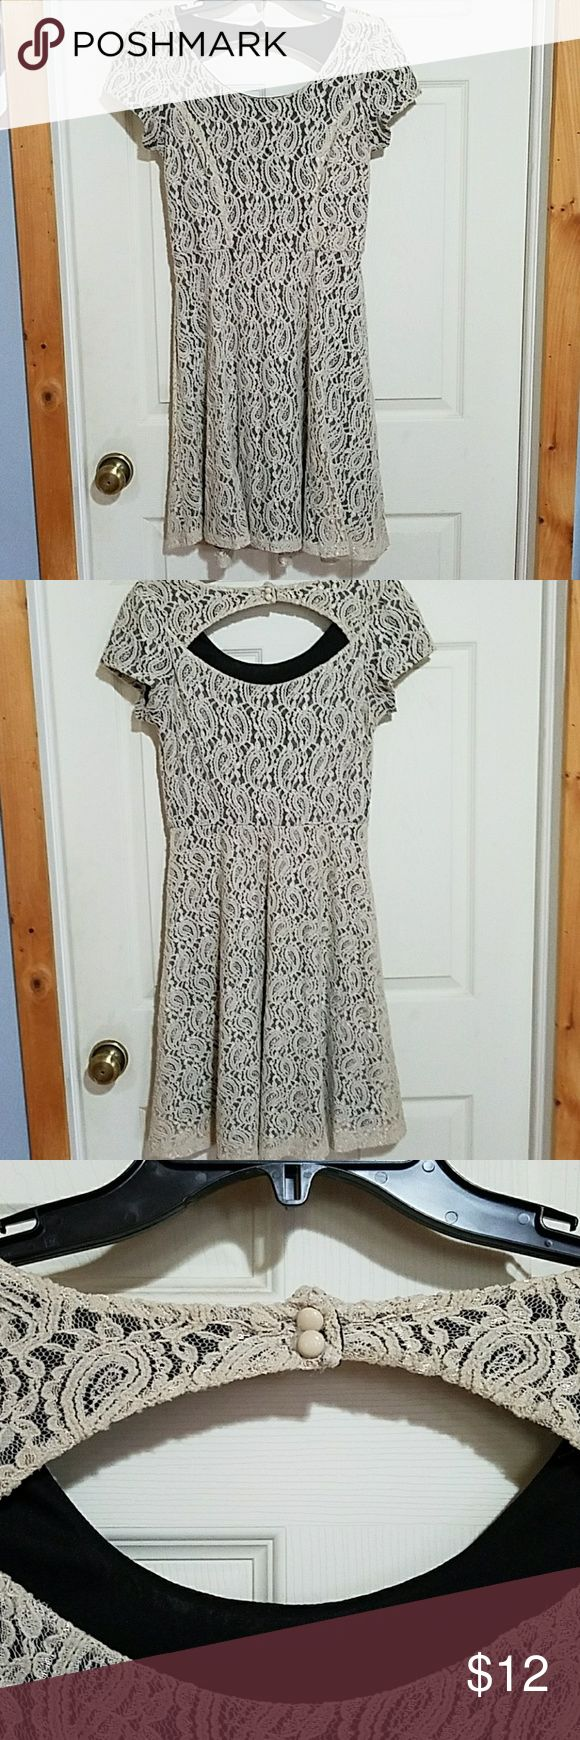 Maurices Cream Lace & Black dress Maurices black dress with a cream lace overlay.  Short sleeves with an open upper back that buttons. Looks great with a belt. There is a small hole in the lace where my necklace caught on it which is shown in the last picture. If you are handy with needle and thread, this could easily be fixed. Size 5/6 and fits like a medium. I've worn it about 5 times, with the last time being last fall. Maurices Dresses Midi